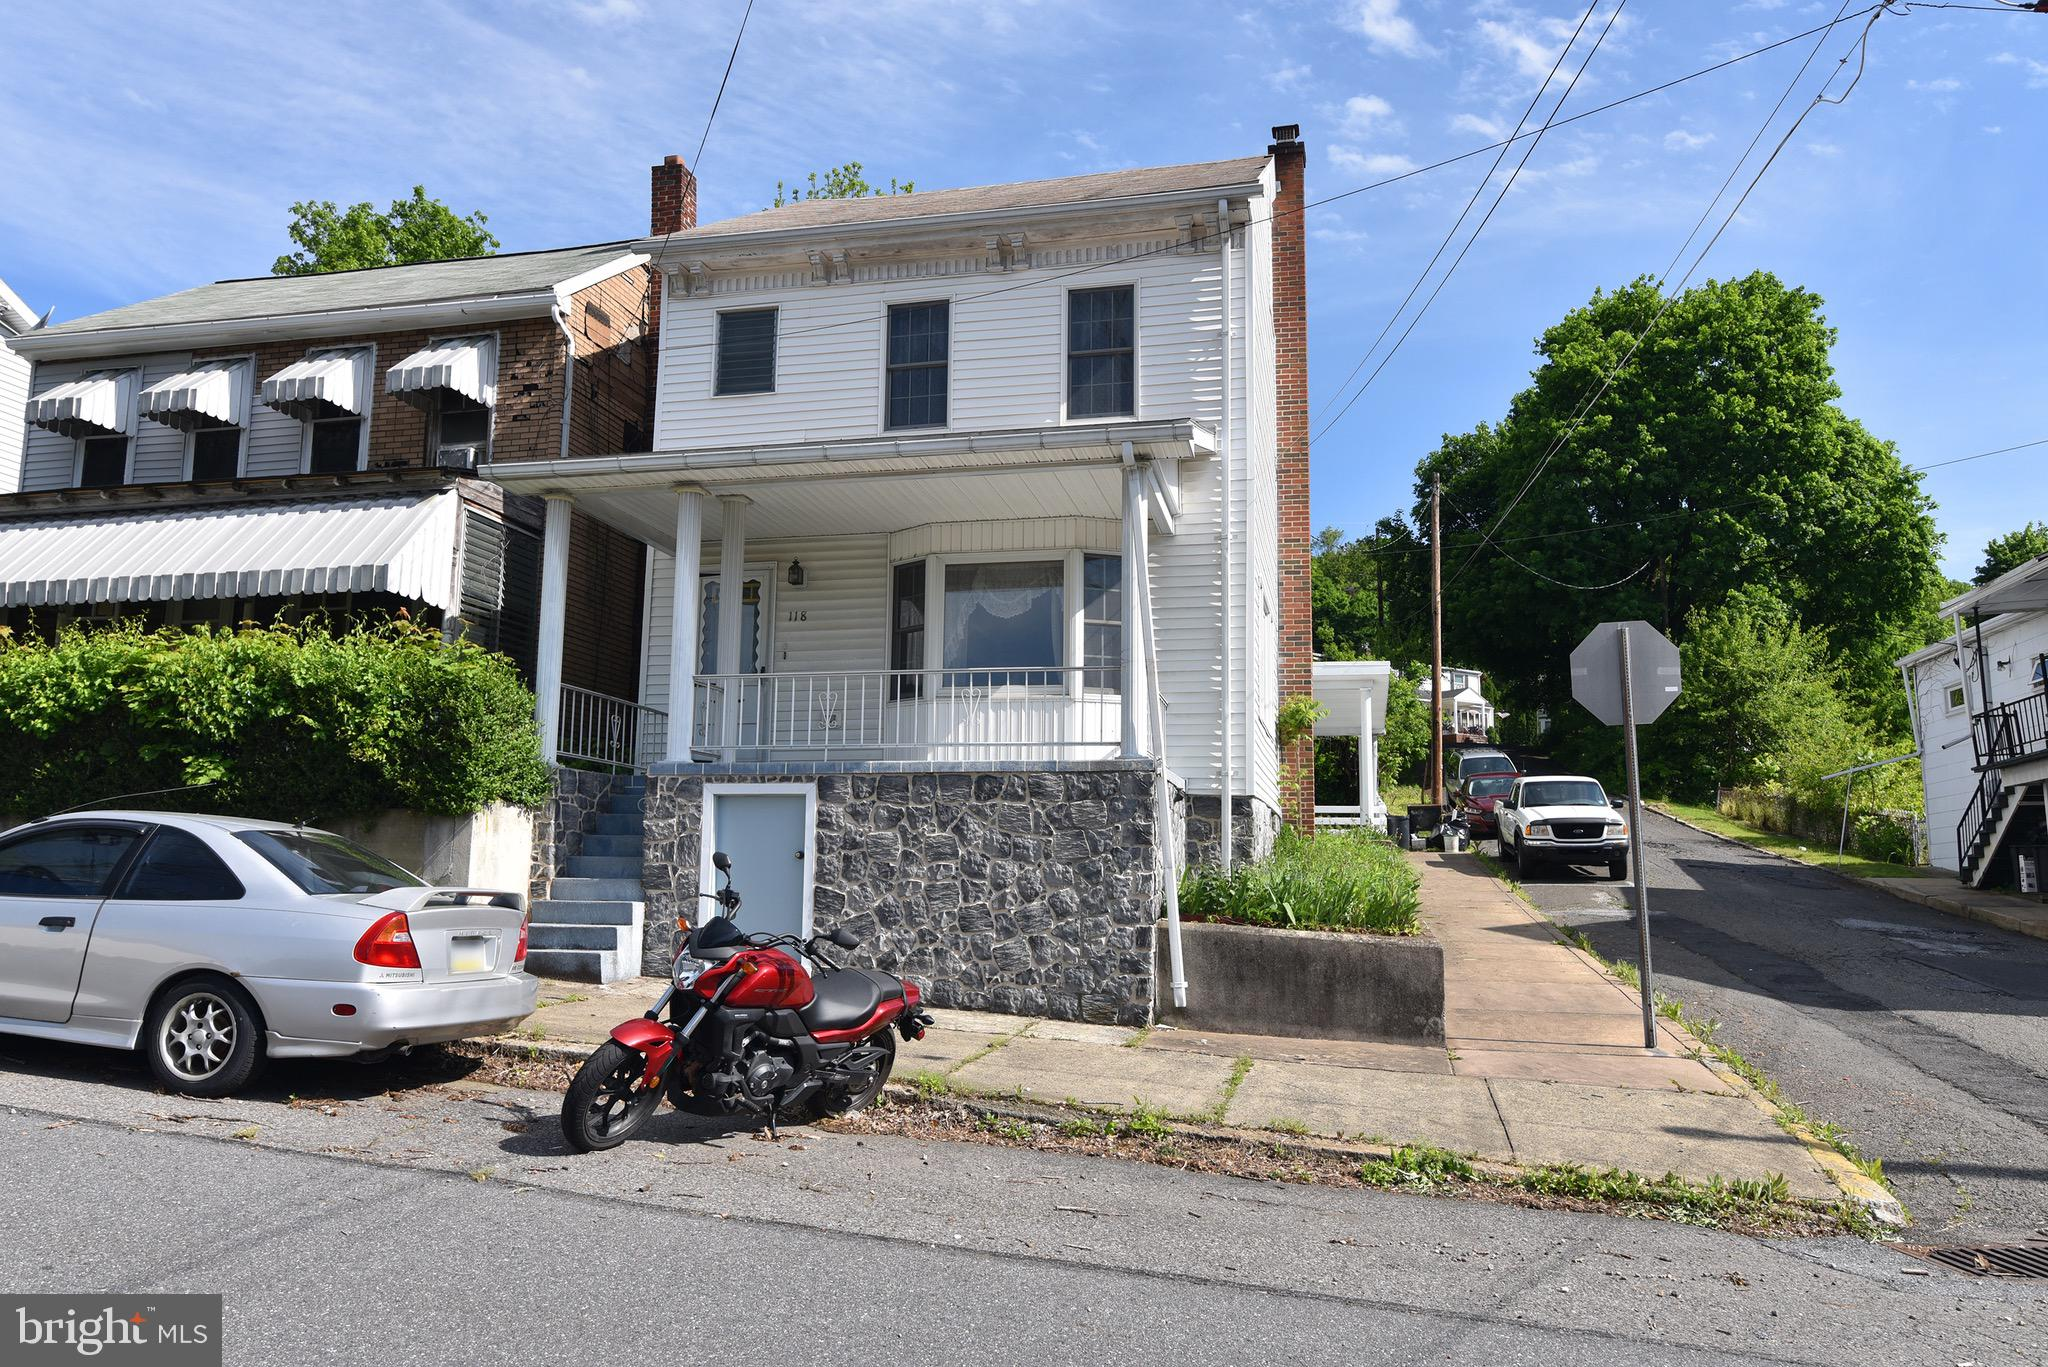 118 NORTH STREET, PORT CARBON, PA 17965